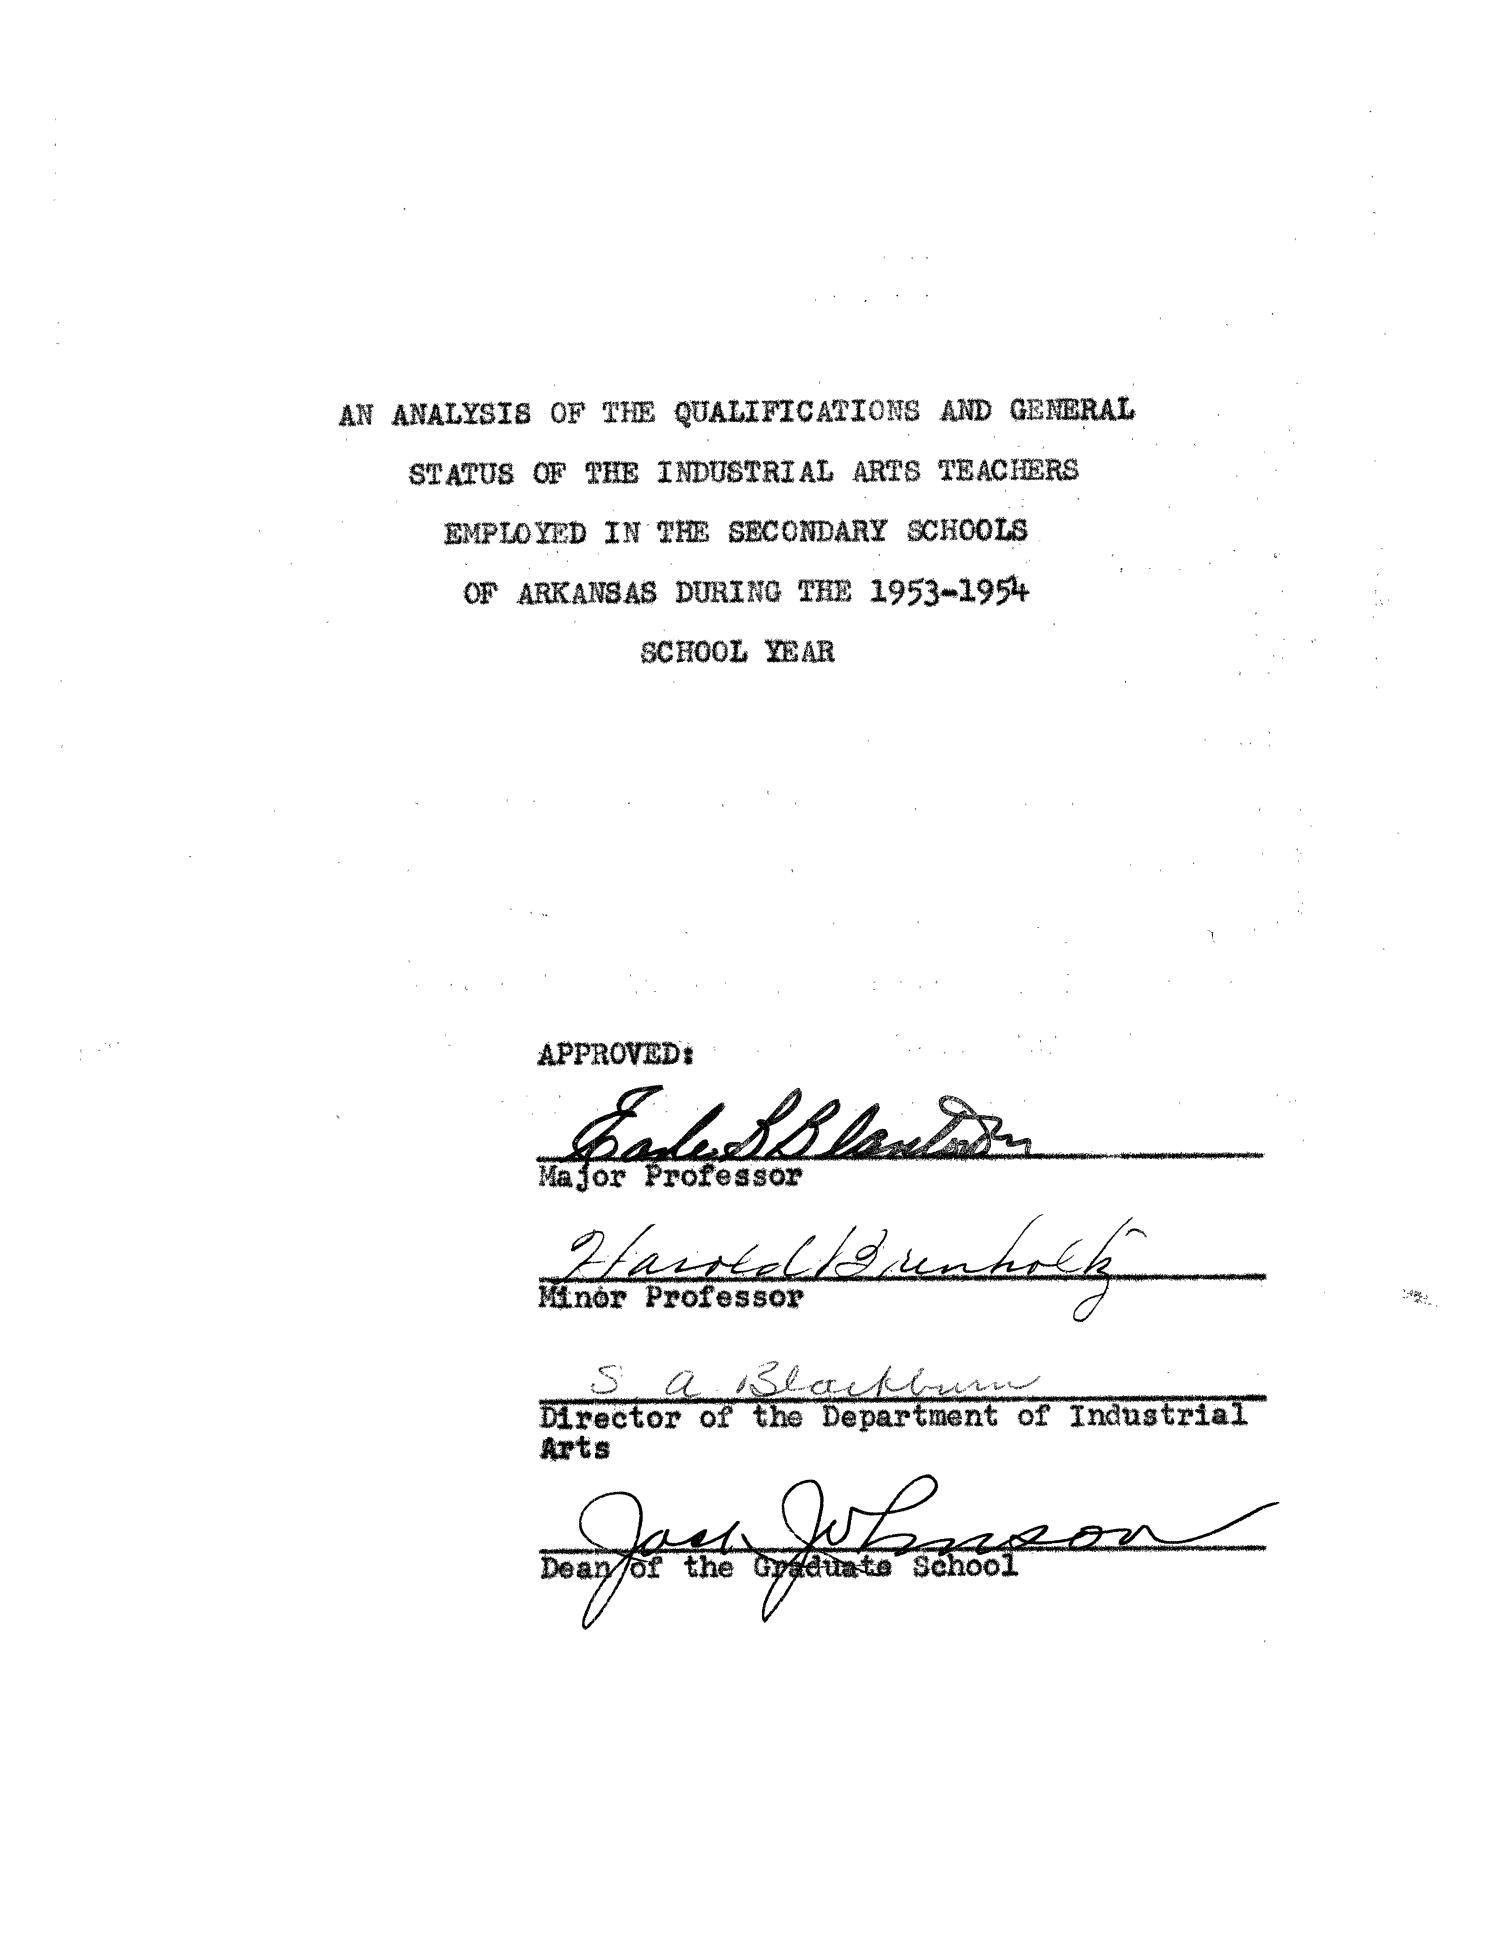 An Analysis of the Qualifications and General Status of the Industrial Arts Teachers Employed in the Secondary Schools of Arkansas during the 1953-1954 School Year                                                                                                      Title Page